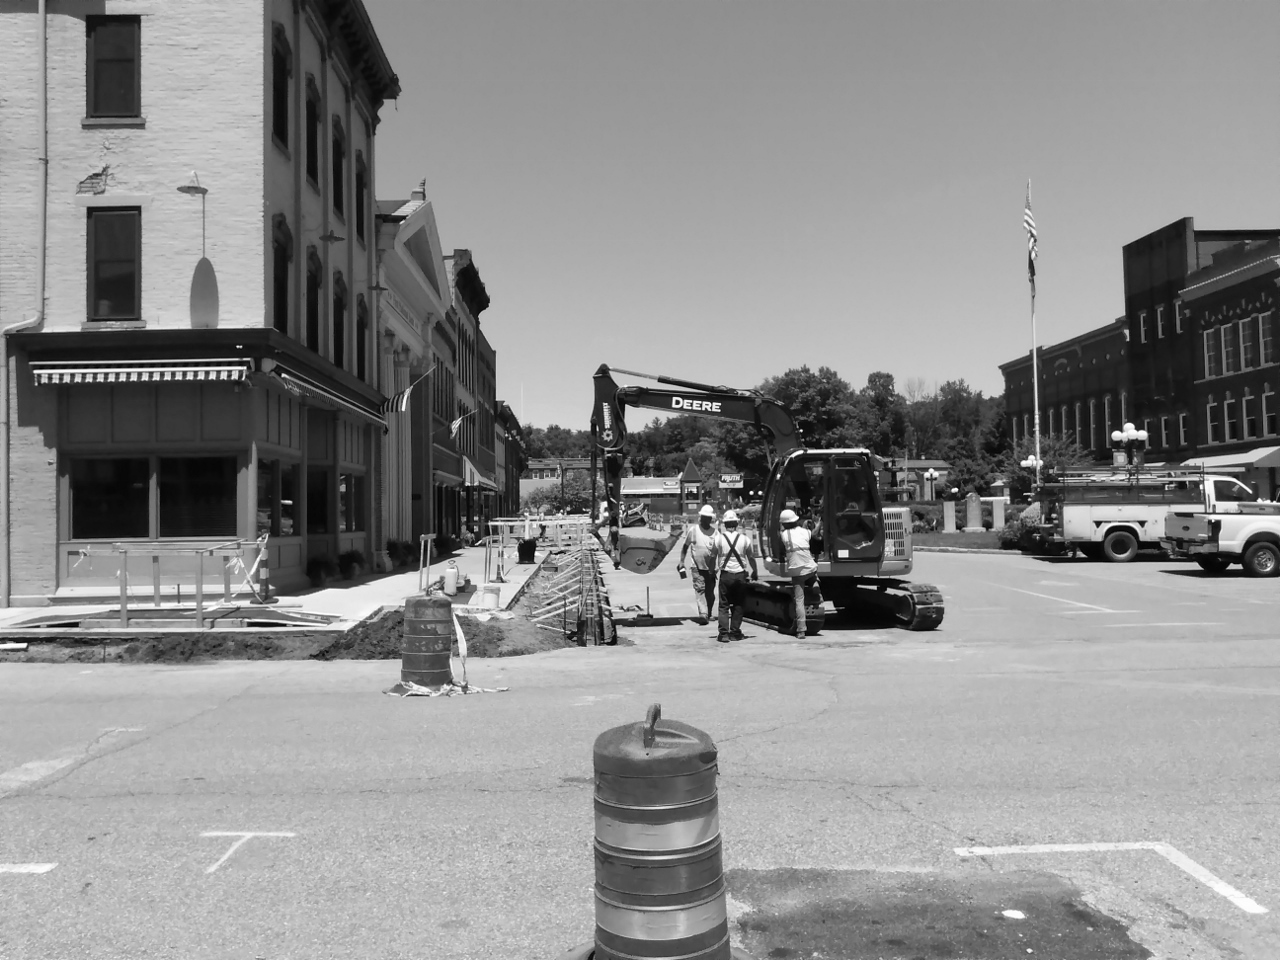 People at Work BW 6-14-2018 1-39-04 PM